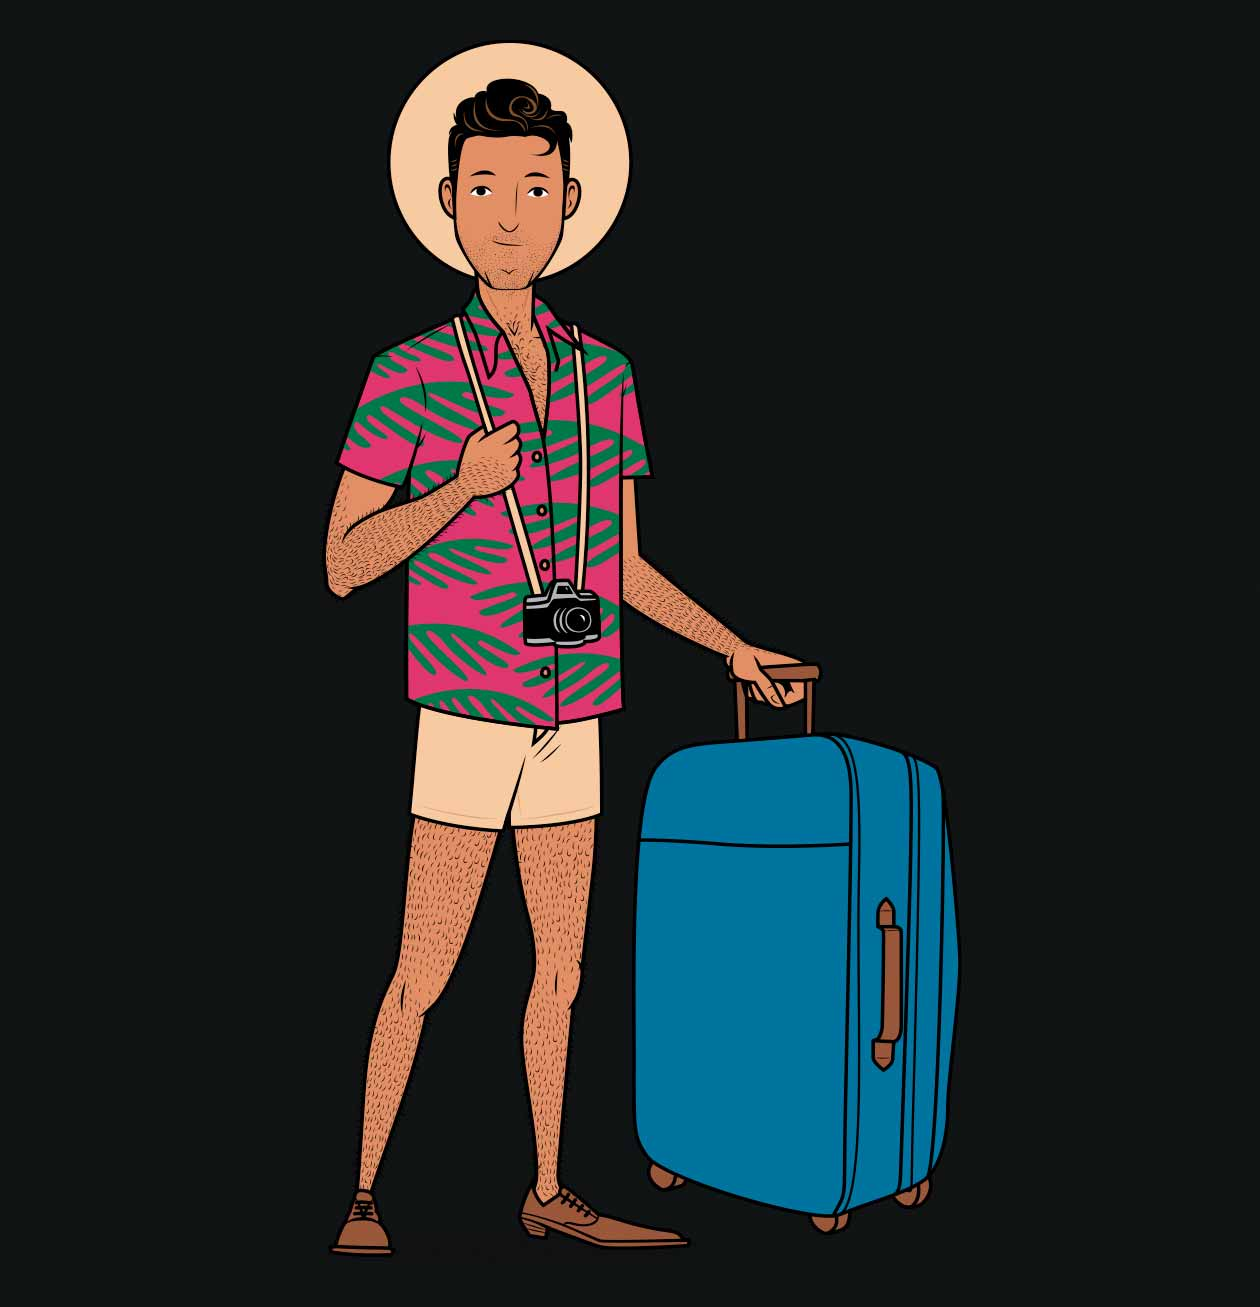 Illustration of a skinny traveller/tourist who's ready to build muscle.